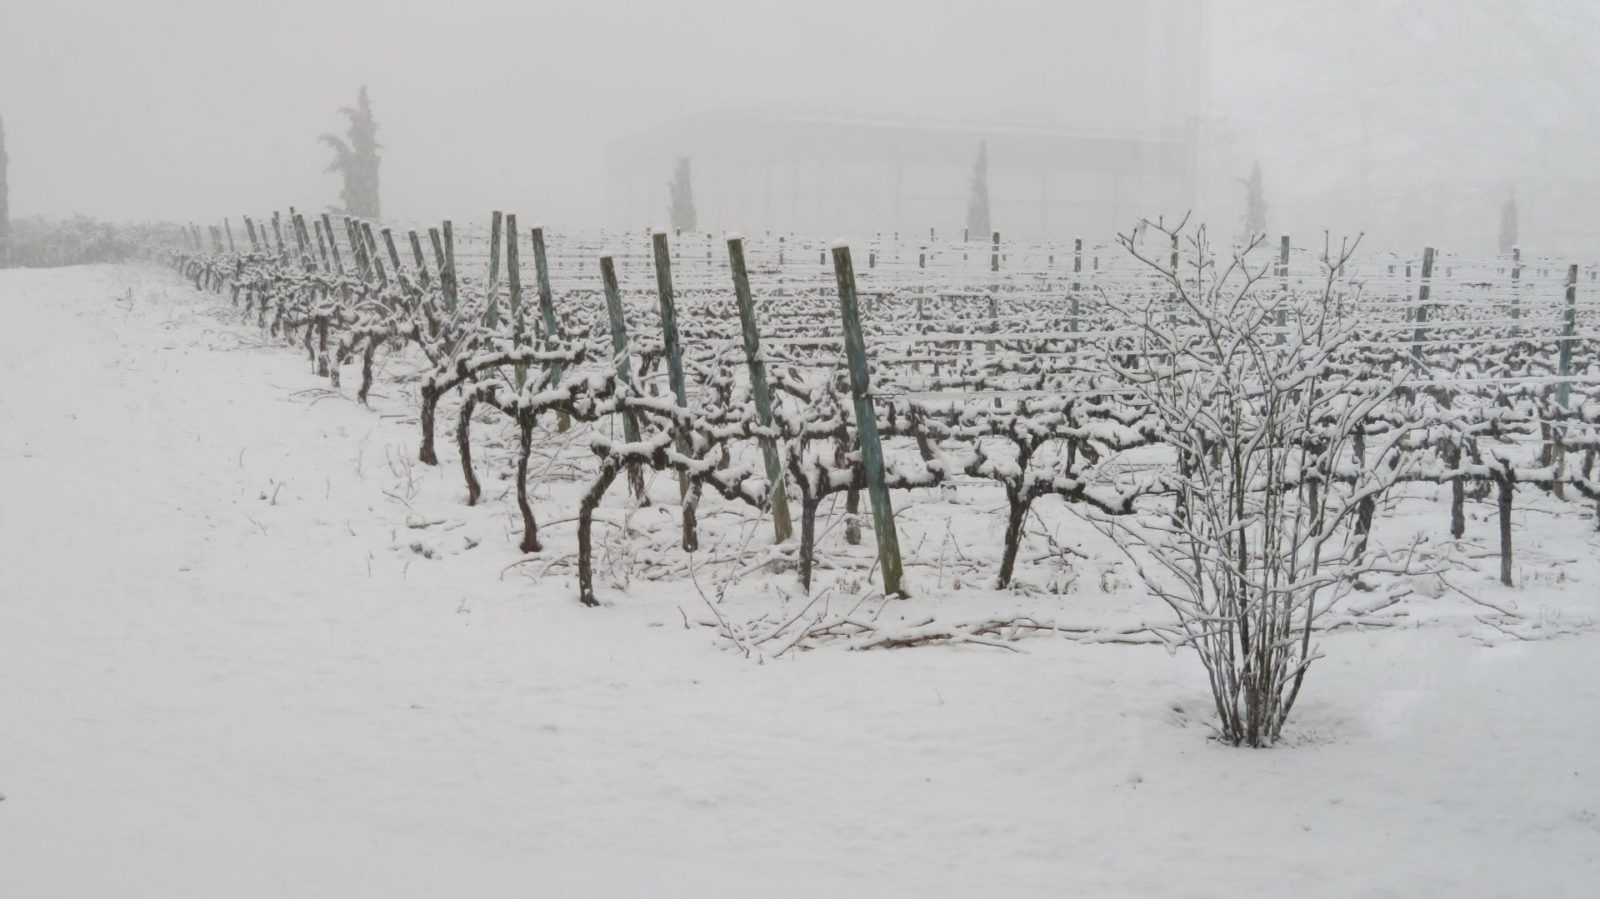 vinedo-nevado-rioja